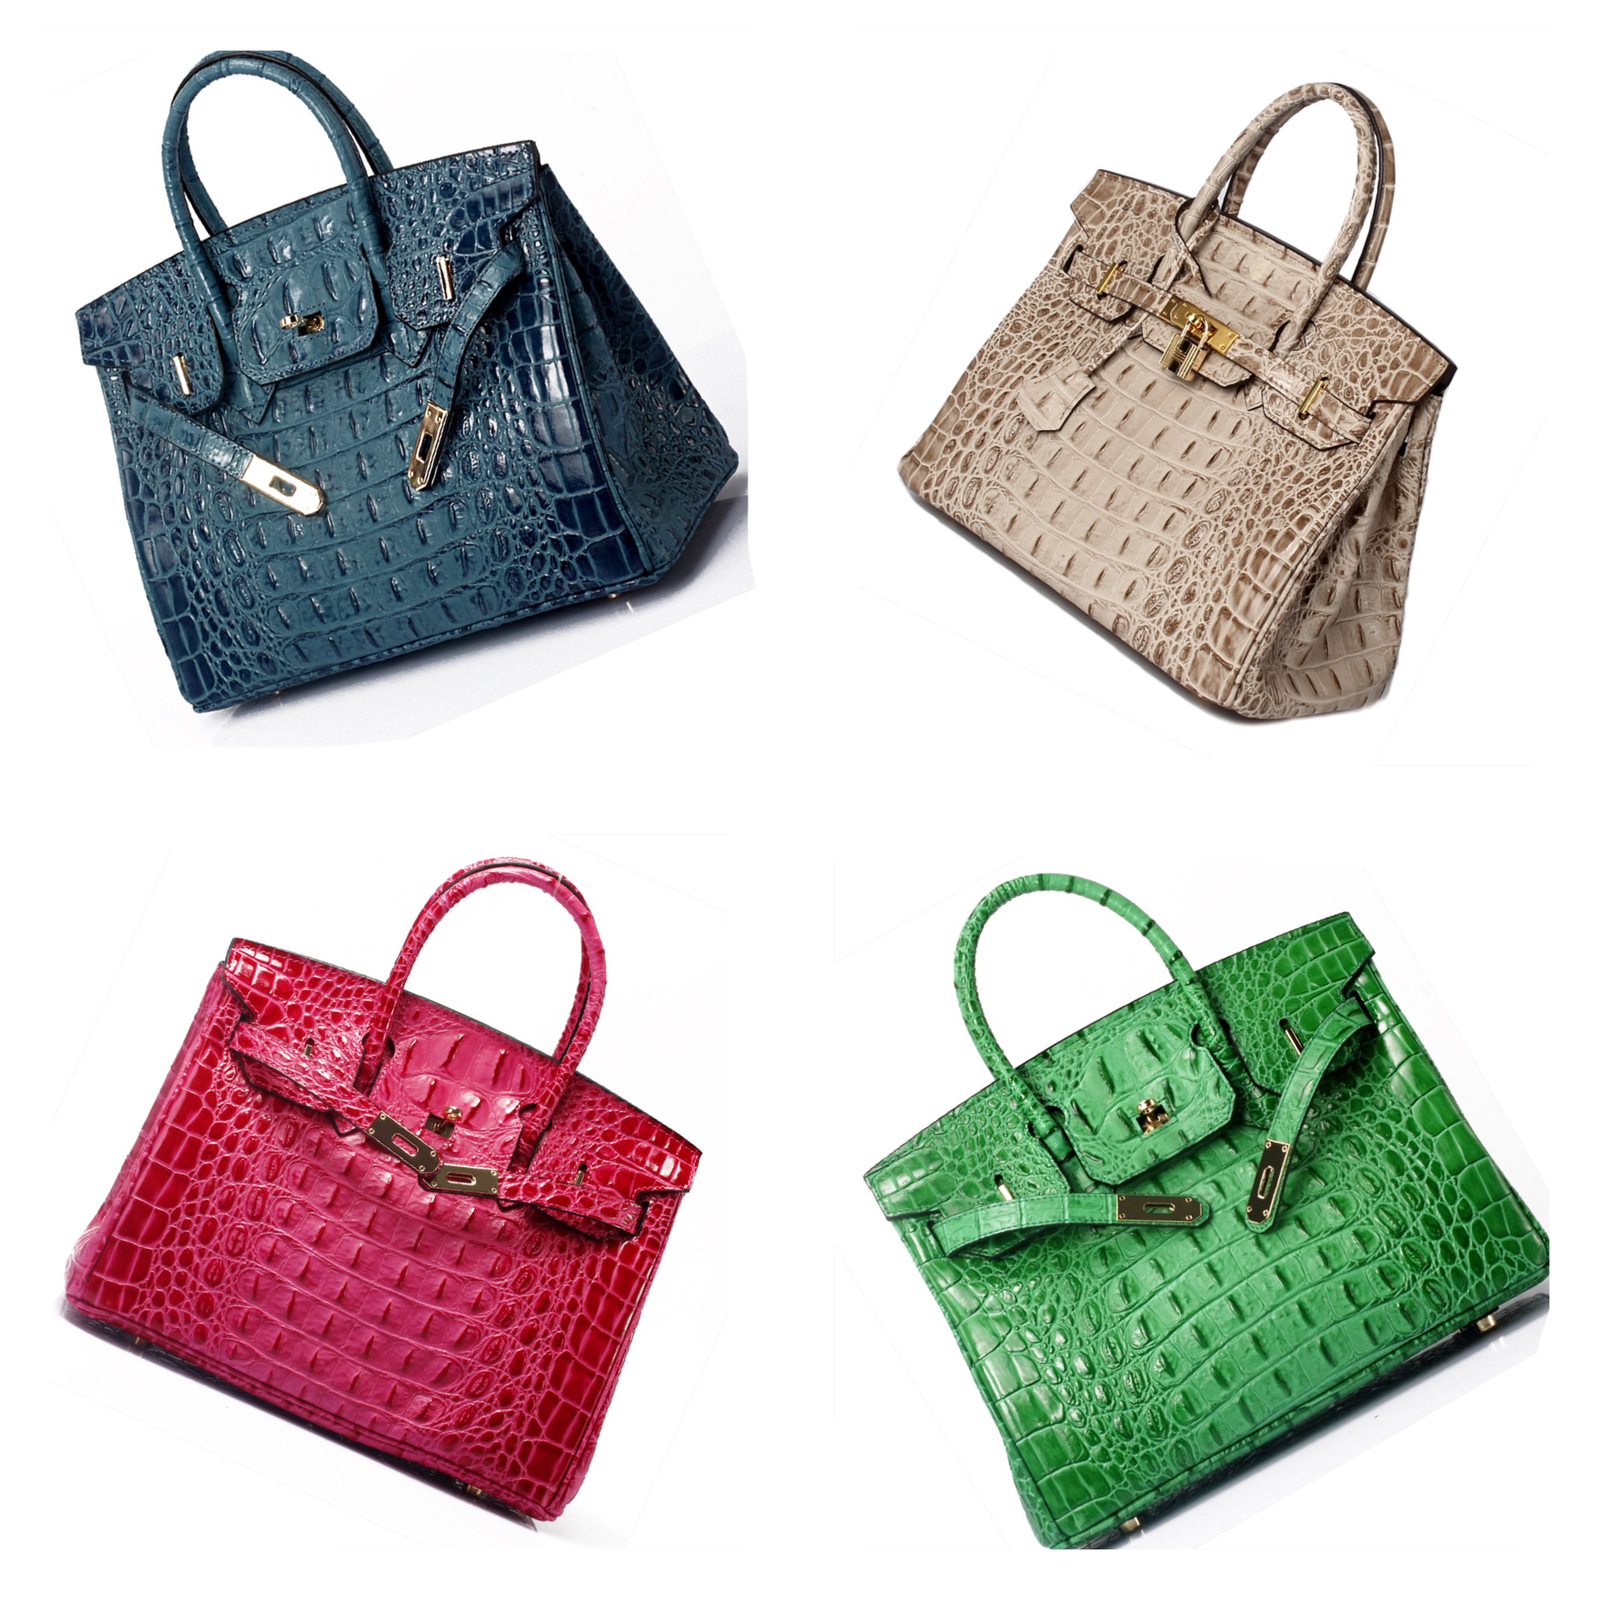 35 cm Crocodile Embossed Italian Leather Birkin Style Handbag Shoulder Bag 1633L